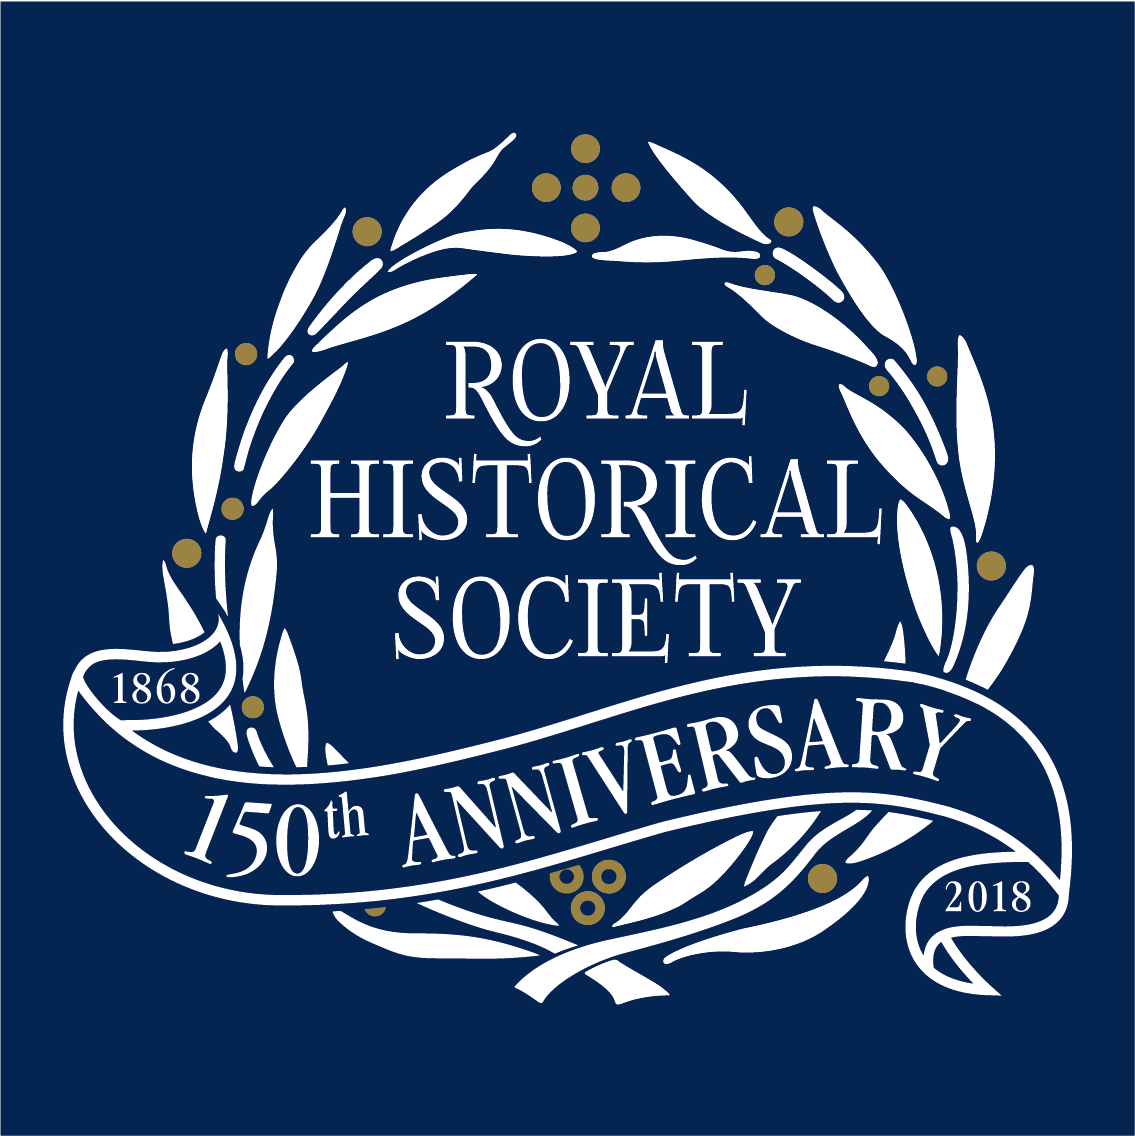 Royal Historical Society logo